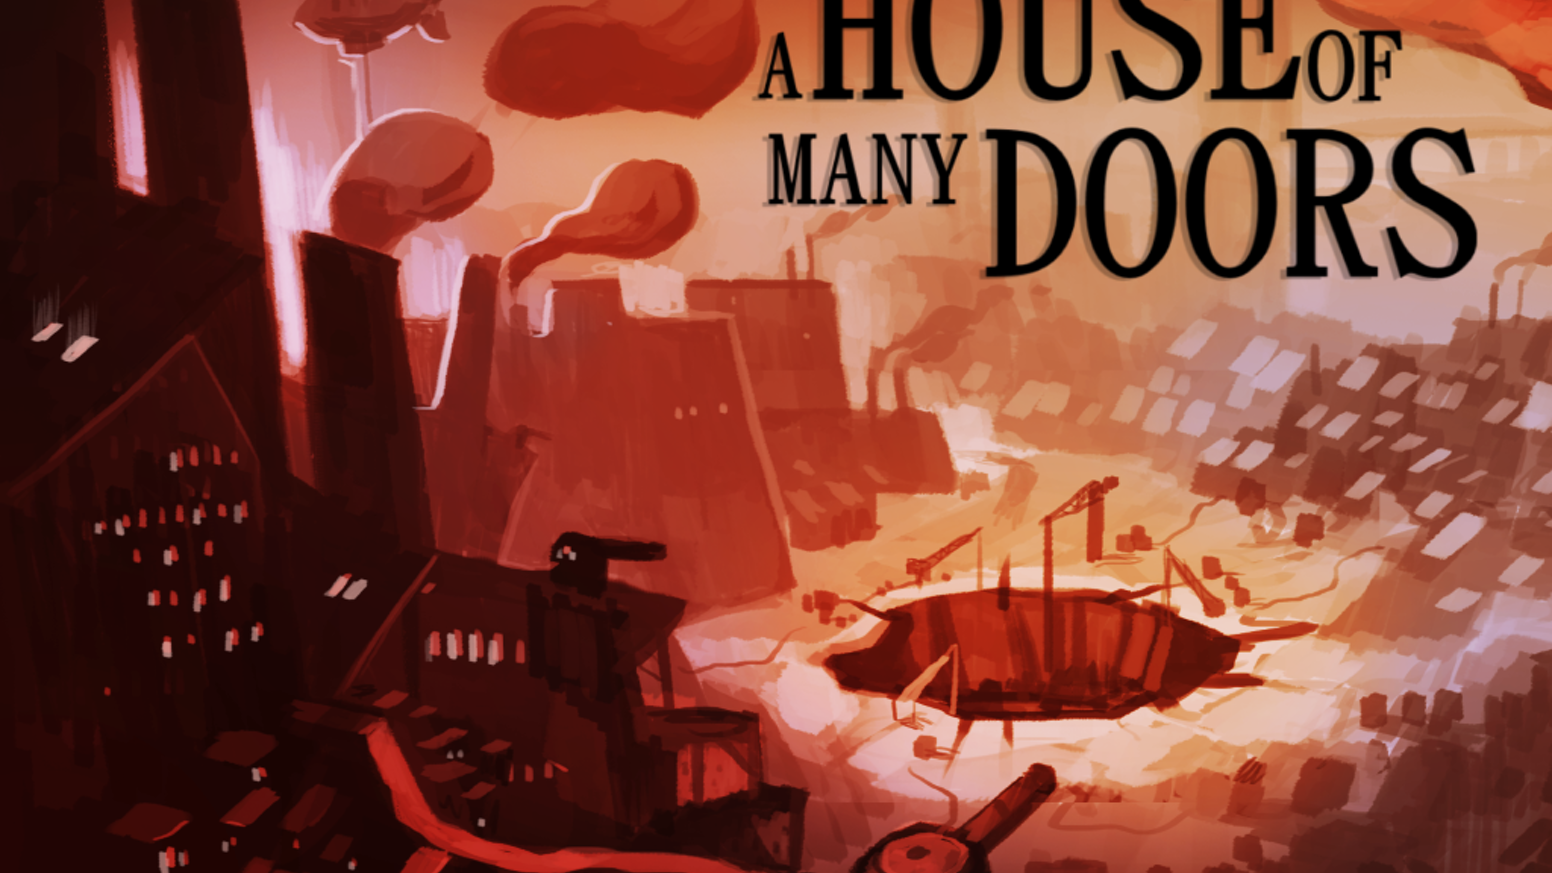 Explore the House, a parasite dimension of cities and secrets. A nonlinear exploration RPG for PC, packed with story and lore.